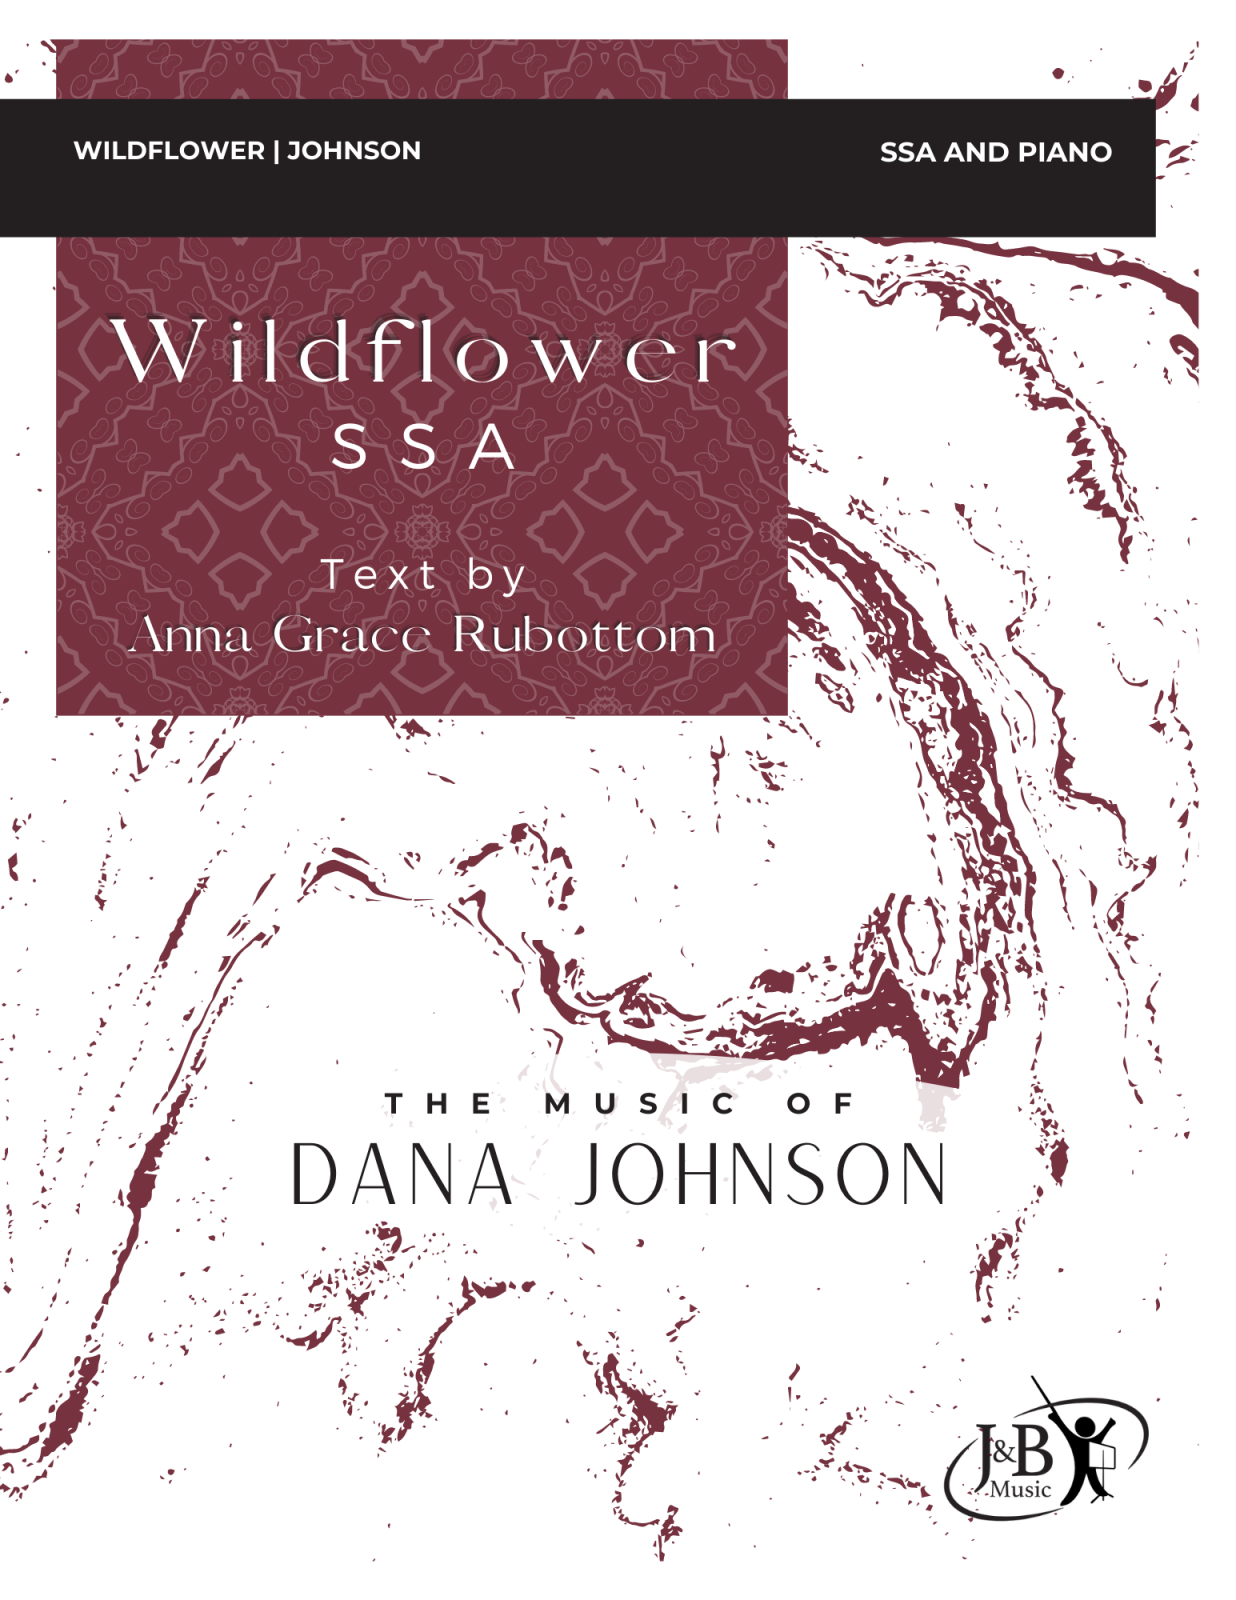 Wildflower | Dana Johnson